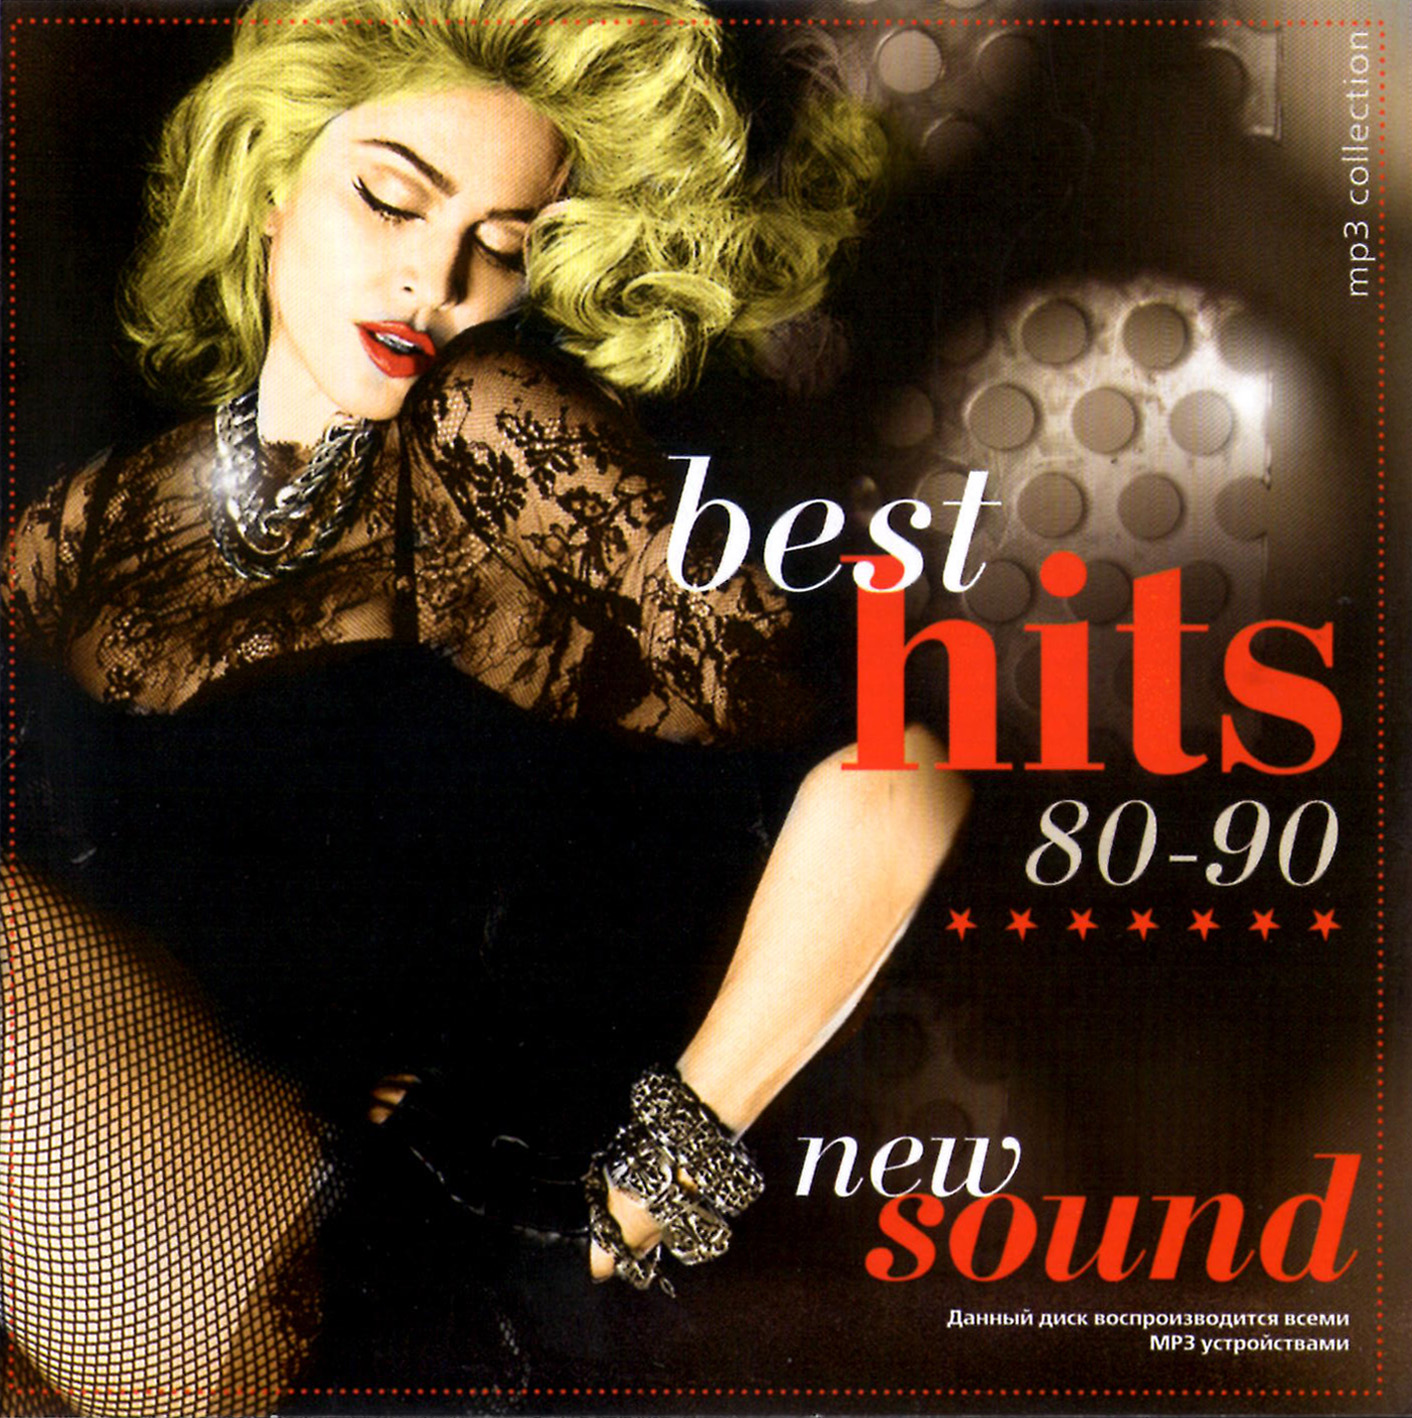 Best hits 80-90 new sound [mp3]